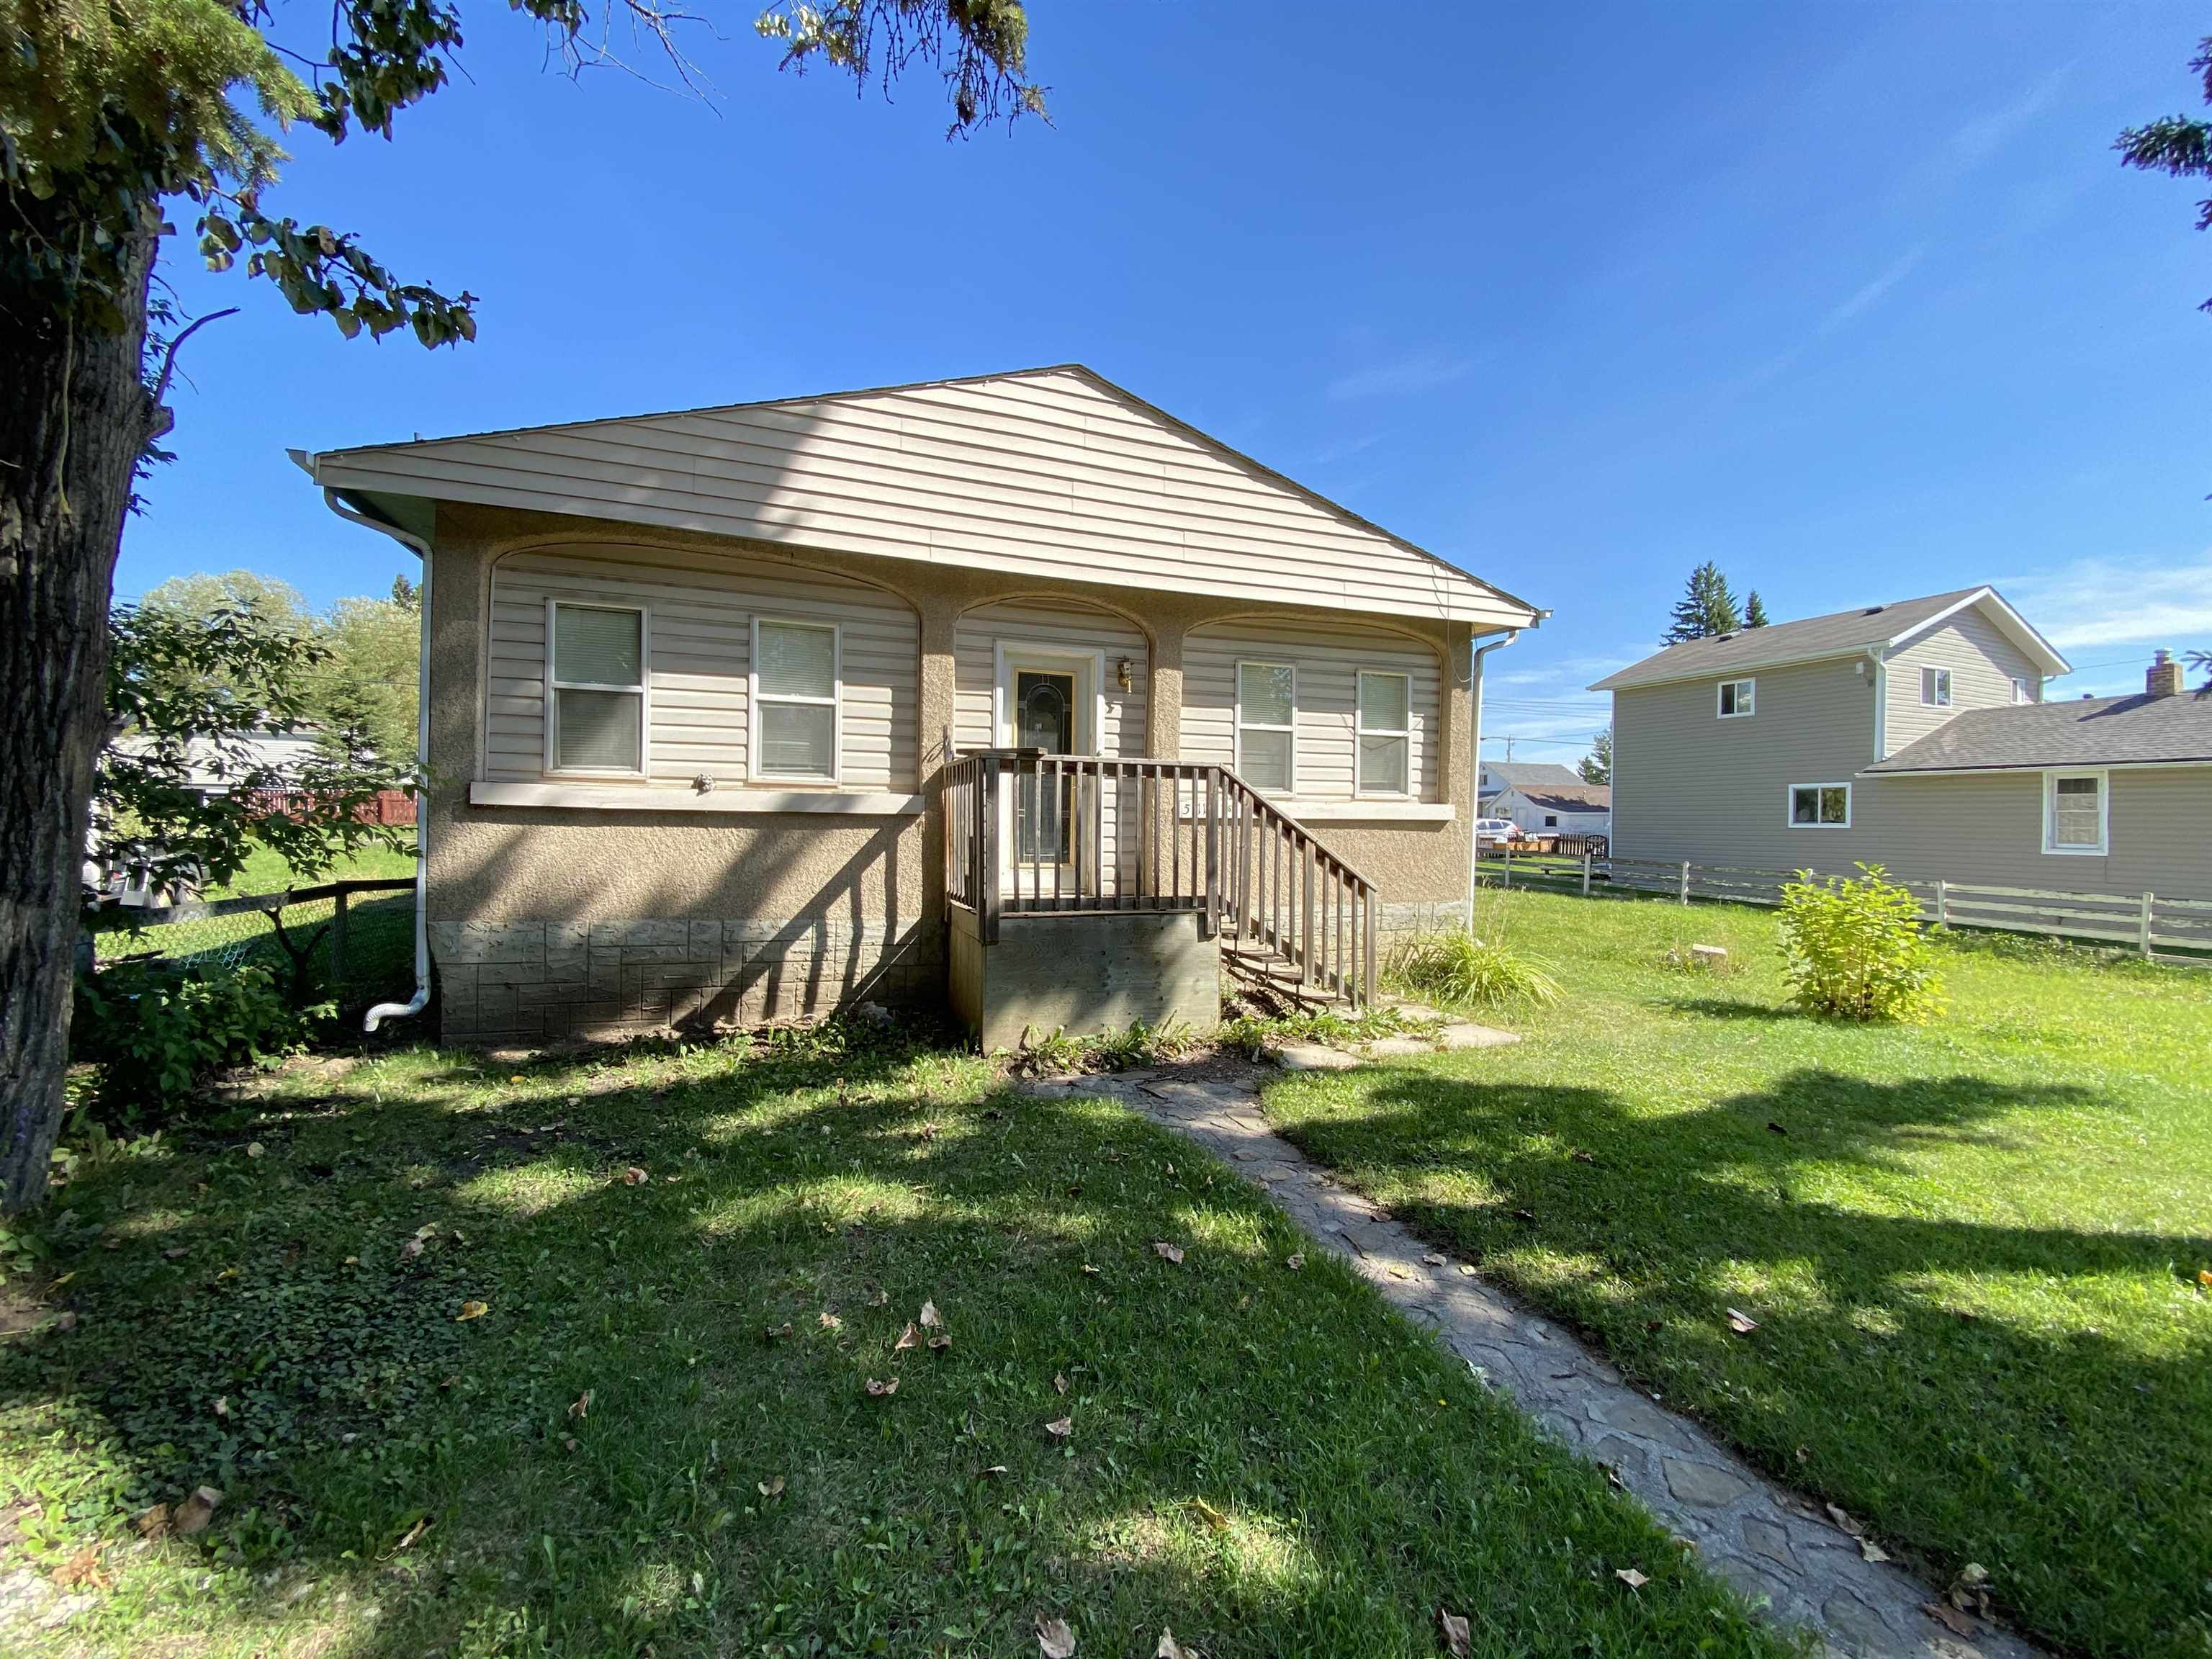 Great starter home in the town of Breton. This 3 bedroom, 1 1/2 bath home has had some great updates done over the years. As you enter the home you will appreciate the spacious living room and kitchen area. With a separate dining area as well, this home has room for the whole family! 2 bedrooms on the main floor including the large Primary bedroom, along with an updated 4 pce bath that features a claw foot tub to relax in after a long day. The main floor has had vinyl plank flooring installed throughout too! The basement area features a 3rd bedroom, family room, and a 2 pce bath. Outside the large lot is fenced with back alley access.